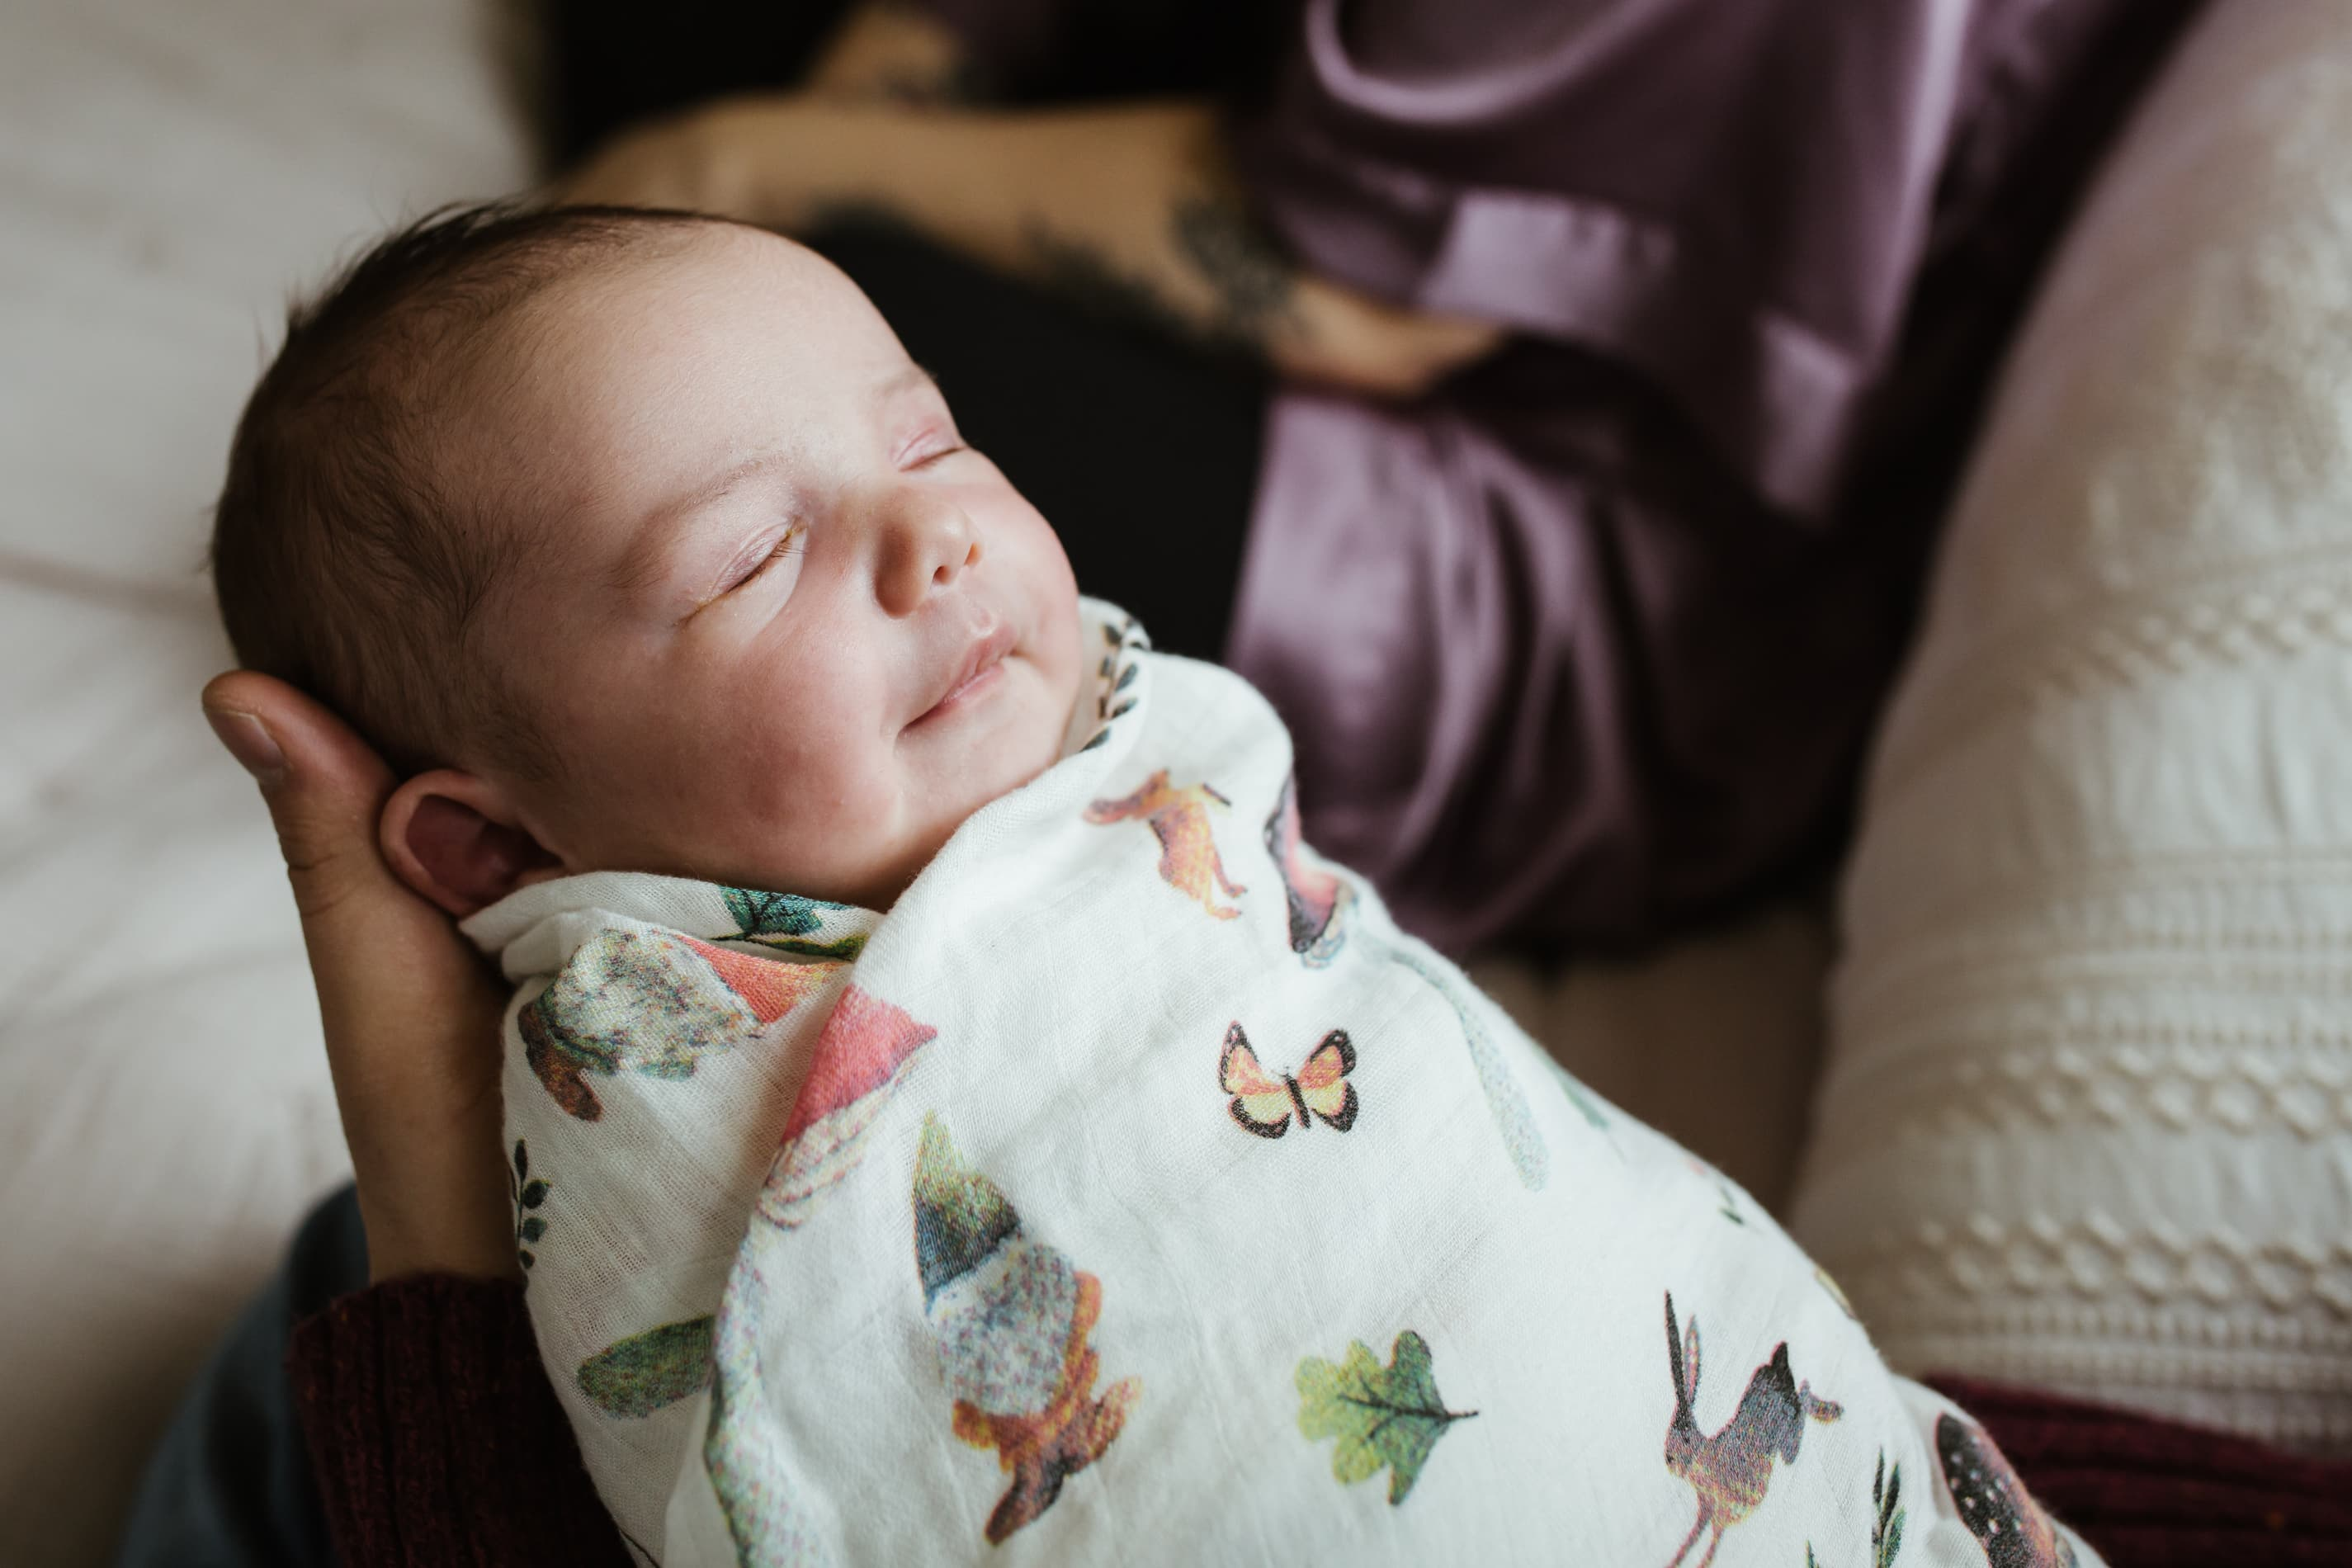 family documentary session newborn baby swaddles in brightly colored muslin blanket being held by her dad